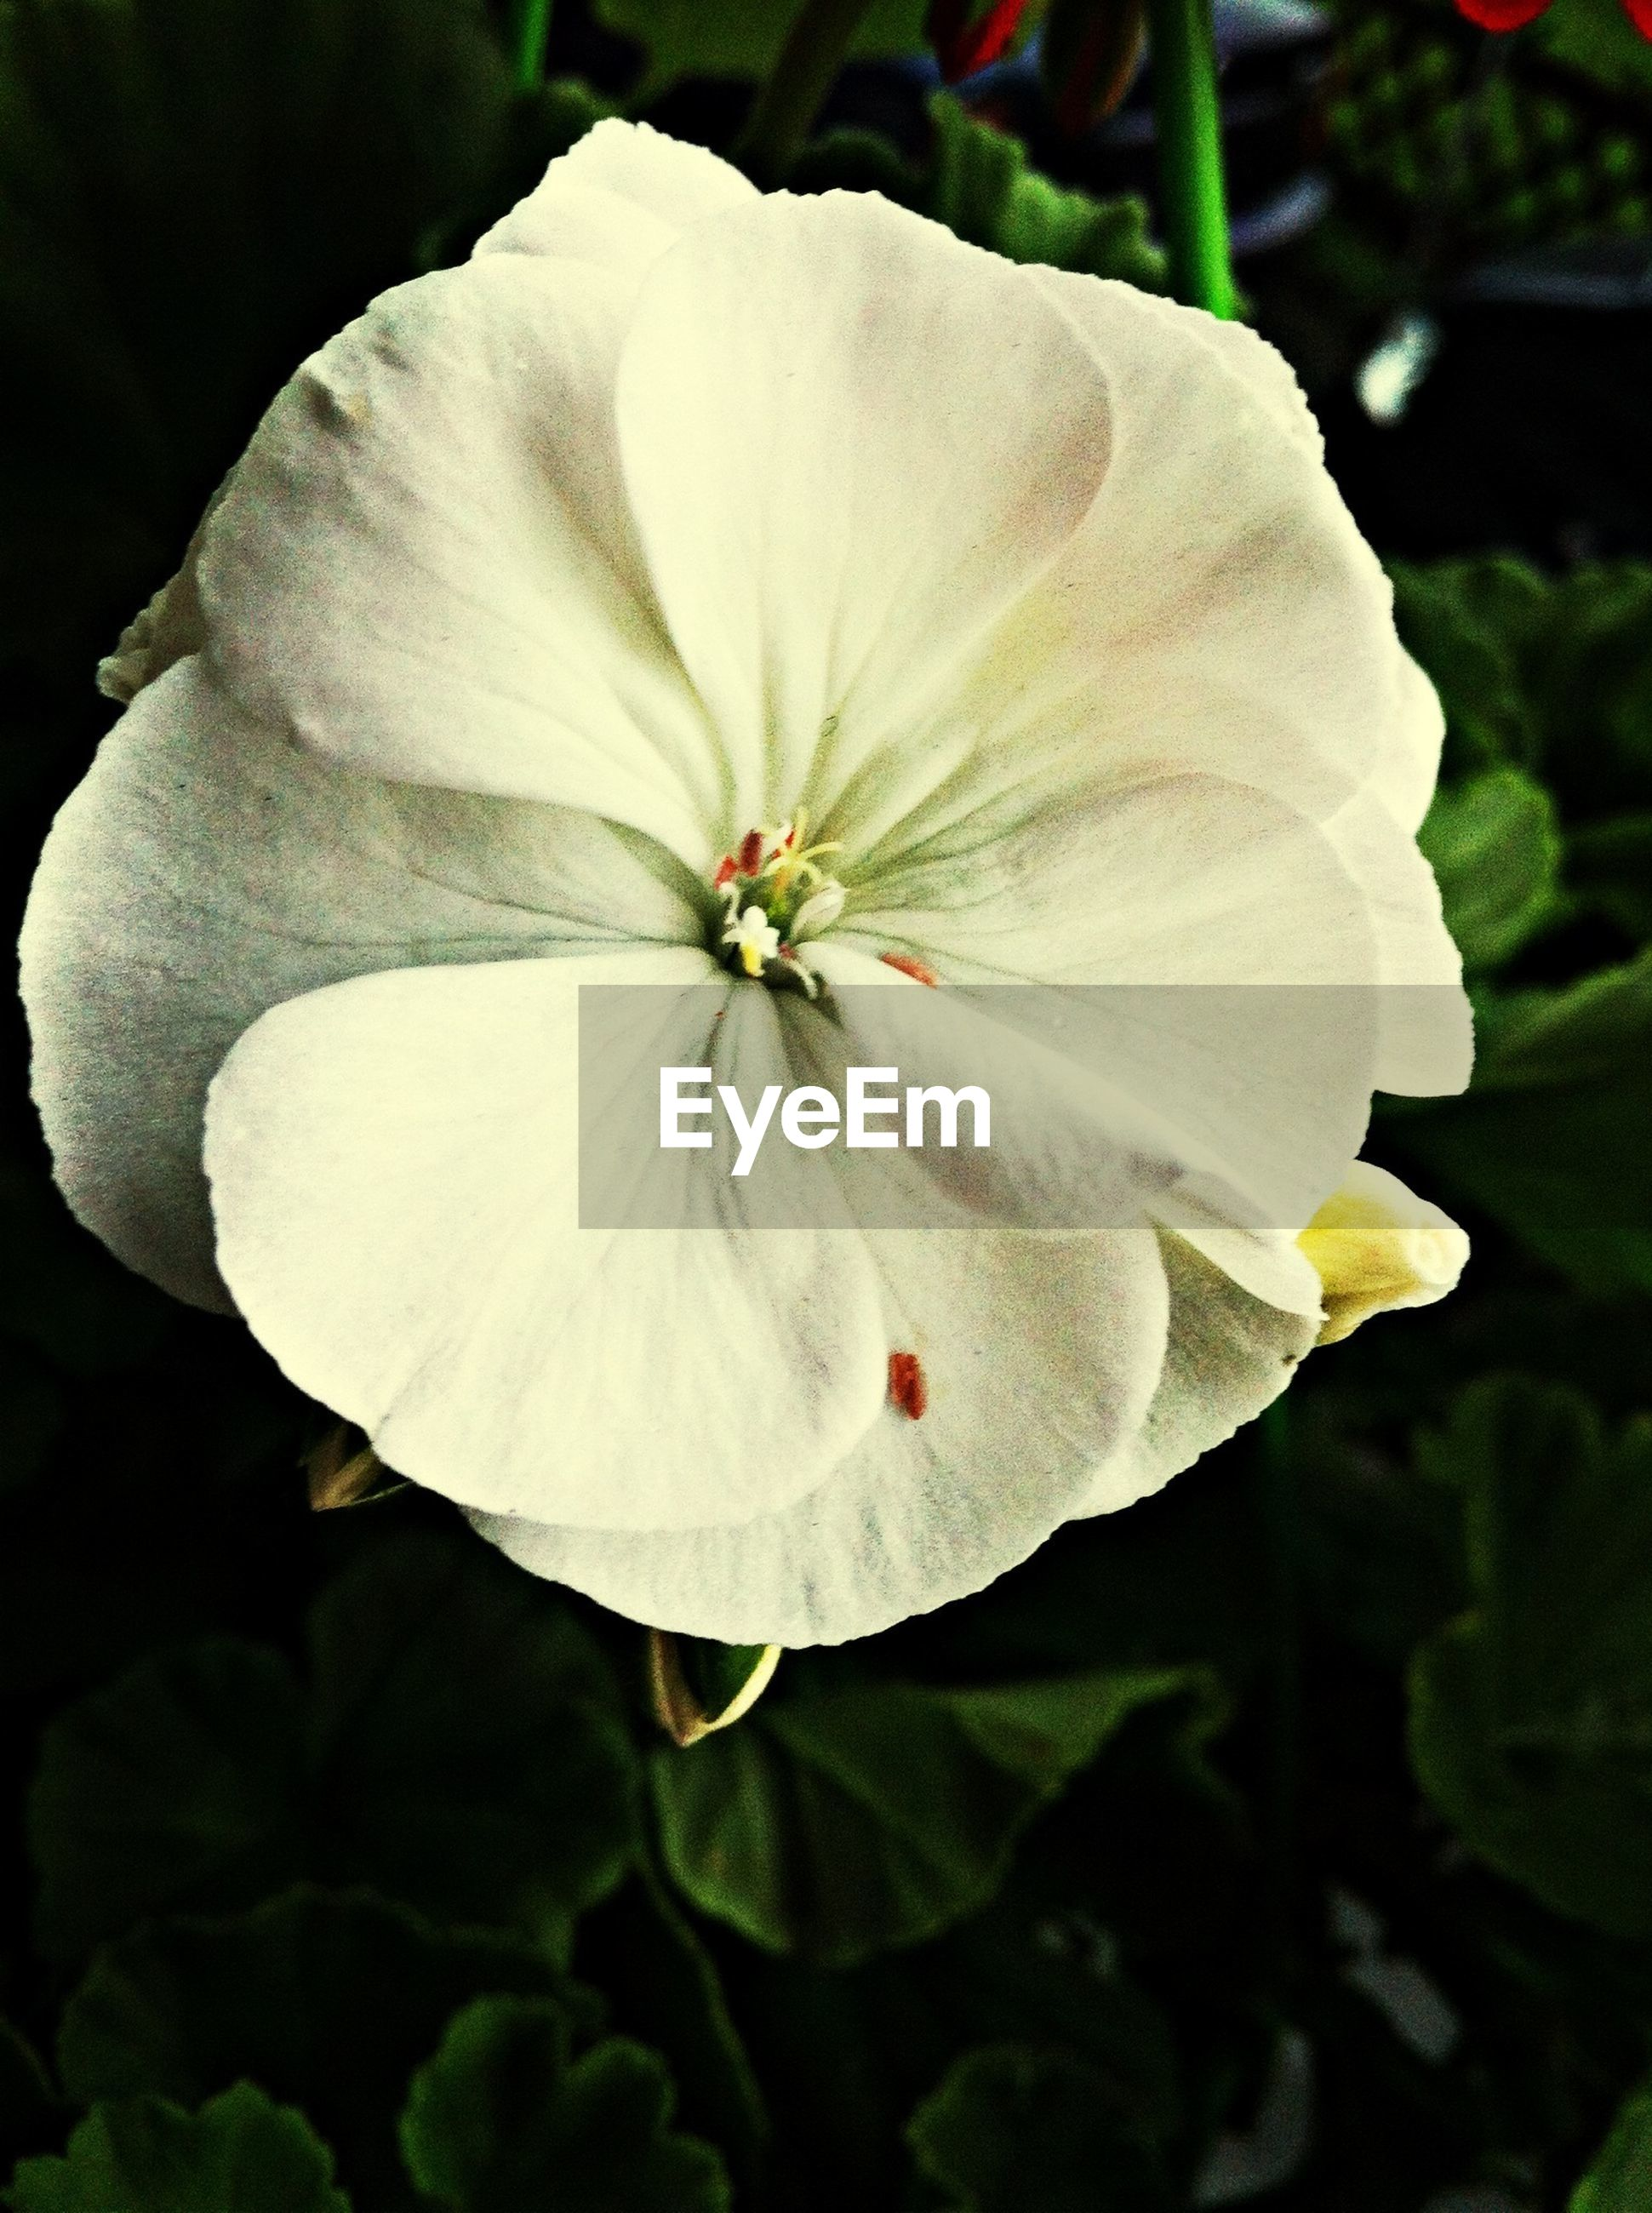 flower, petal, flower head, fragility, freshness, single flower, close-up, beauty in nature, growth, white color, pollen, stamen, blooming, nature, in bloom, focus on foreground, plant, blossom, no people, outdoors